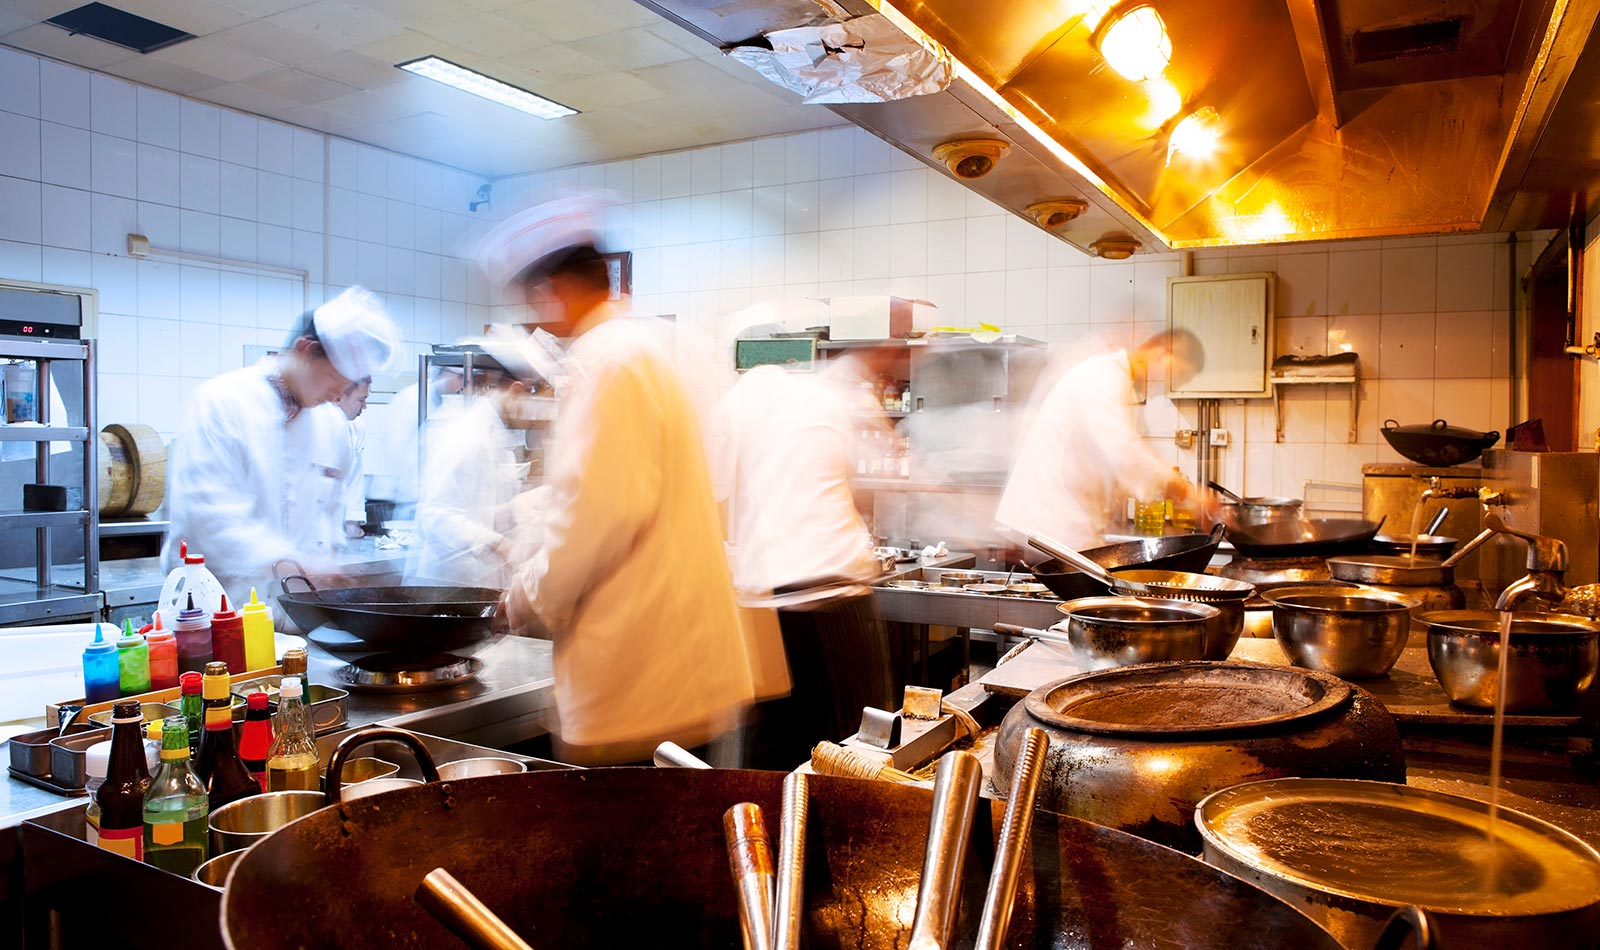 Chefs in action during the dinner rush